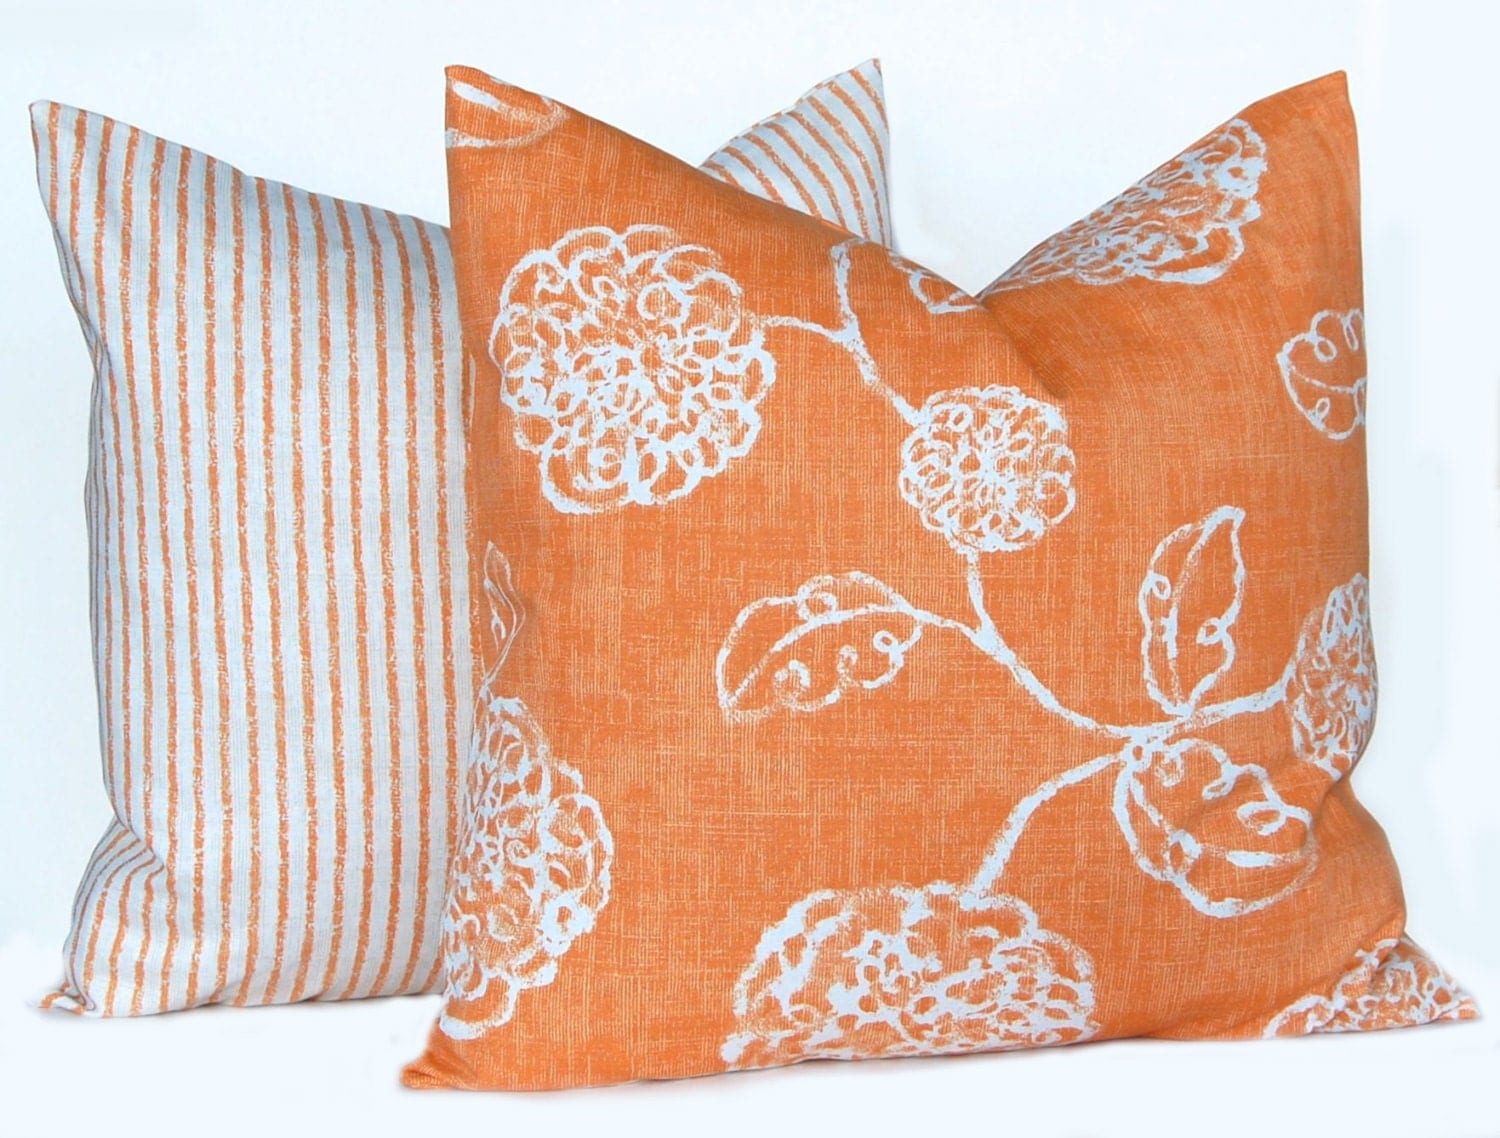 Autumn Pillows Orange Throw Pillows Fall Decor Floral Stripe